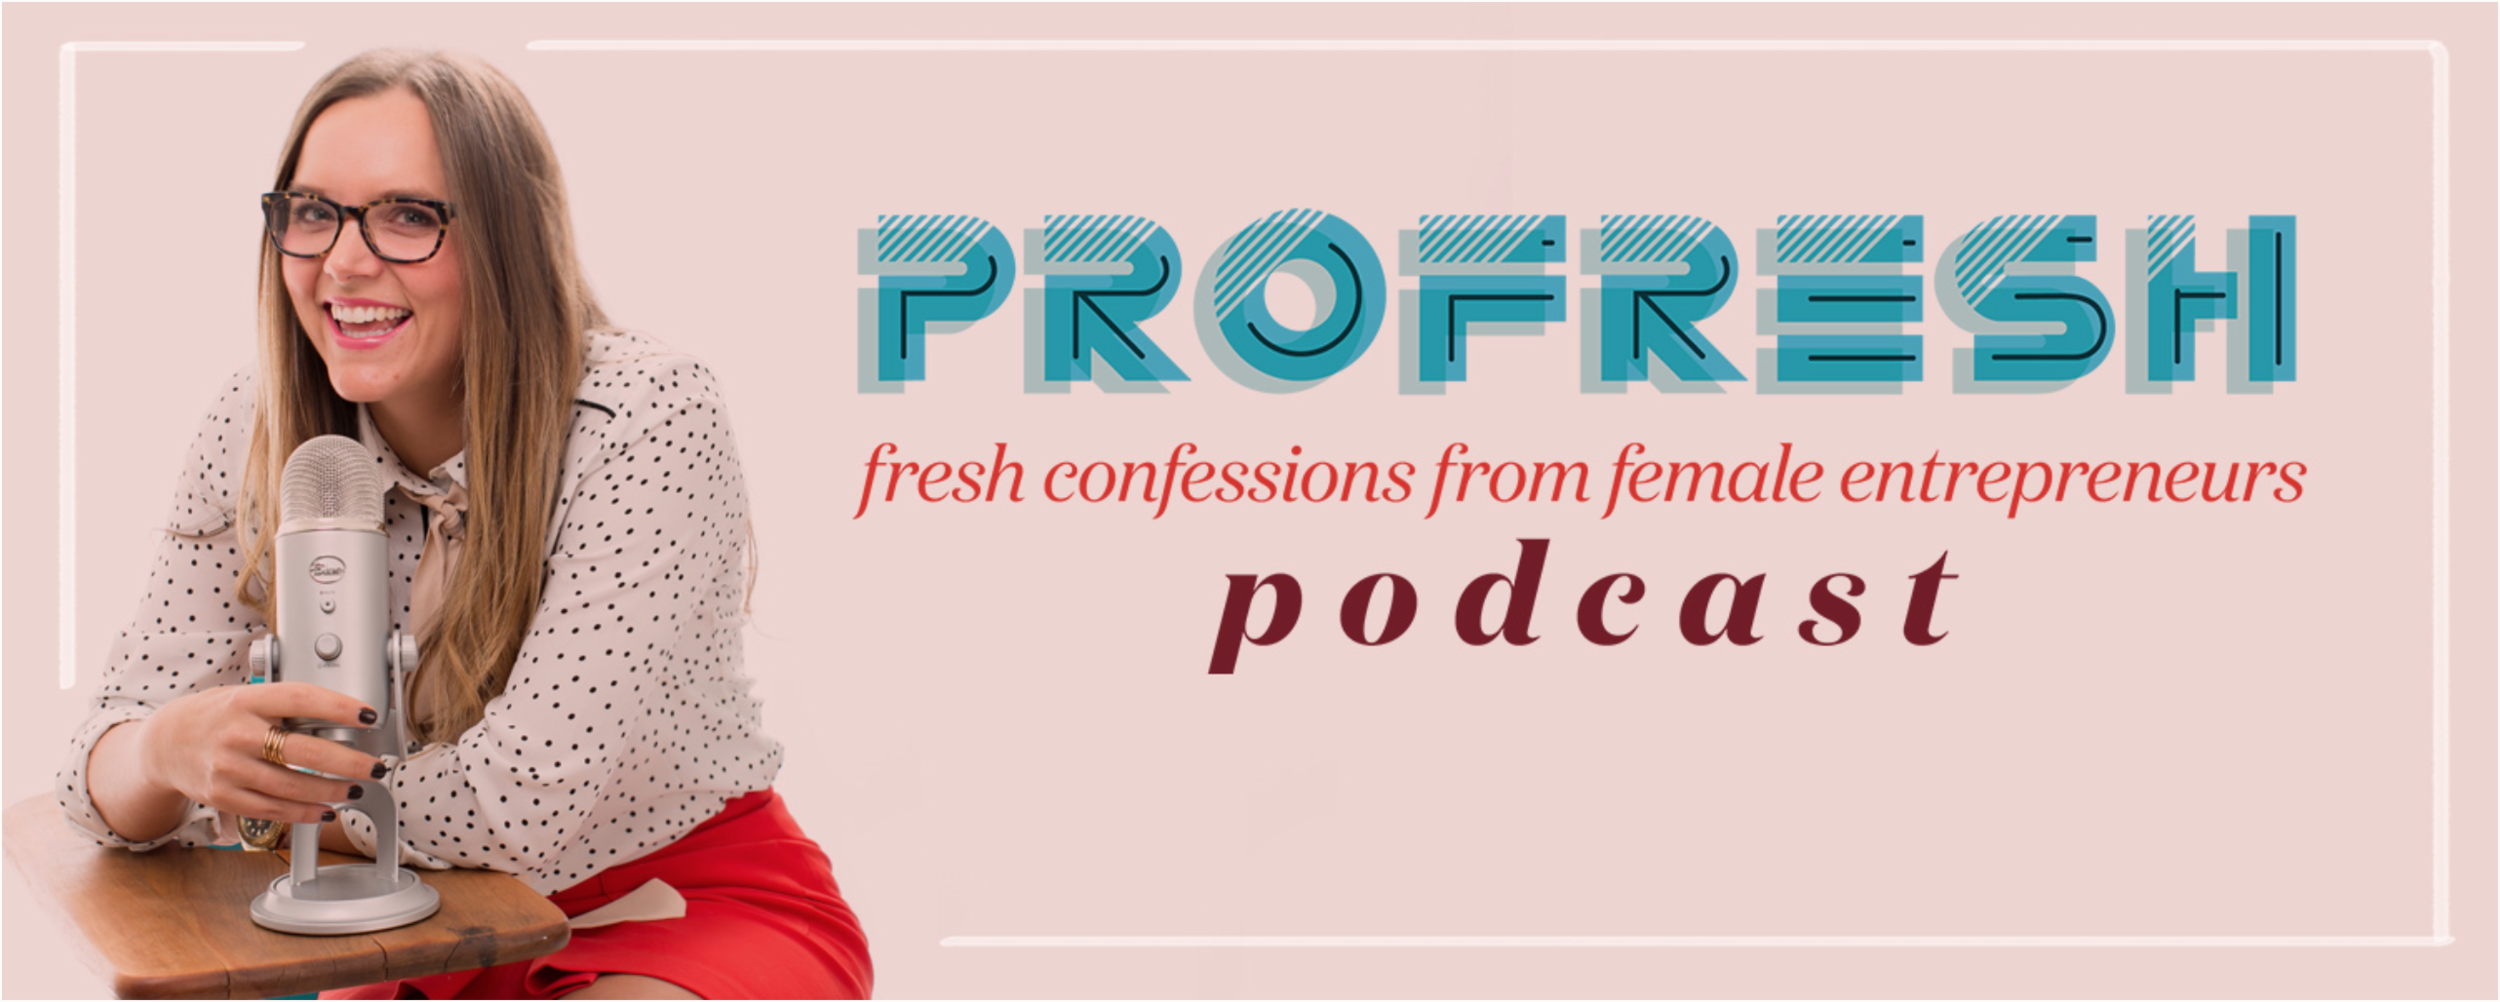 Profresh Podcast:  one of my favorite ways to transition from boss mode to mom mode is to listen to a podcast on the way to preschool pickup. Lately, I've been obsessed with the Profresh Podcast hosted by our dear friend (and mentor, marketing genius, overall girl crush, etc.) Kristen Brown. Each week a new female entrepreneur is featured and I've been loving the brilliant pieces of advice and realness this podcast offers in just 30-45 minutes!  You can download Profresh here.